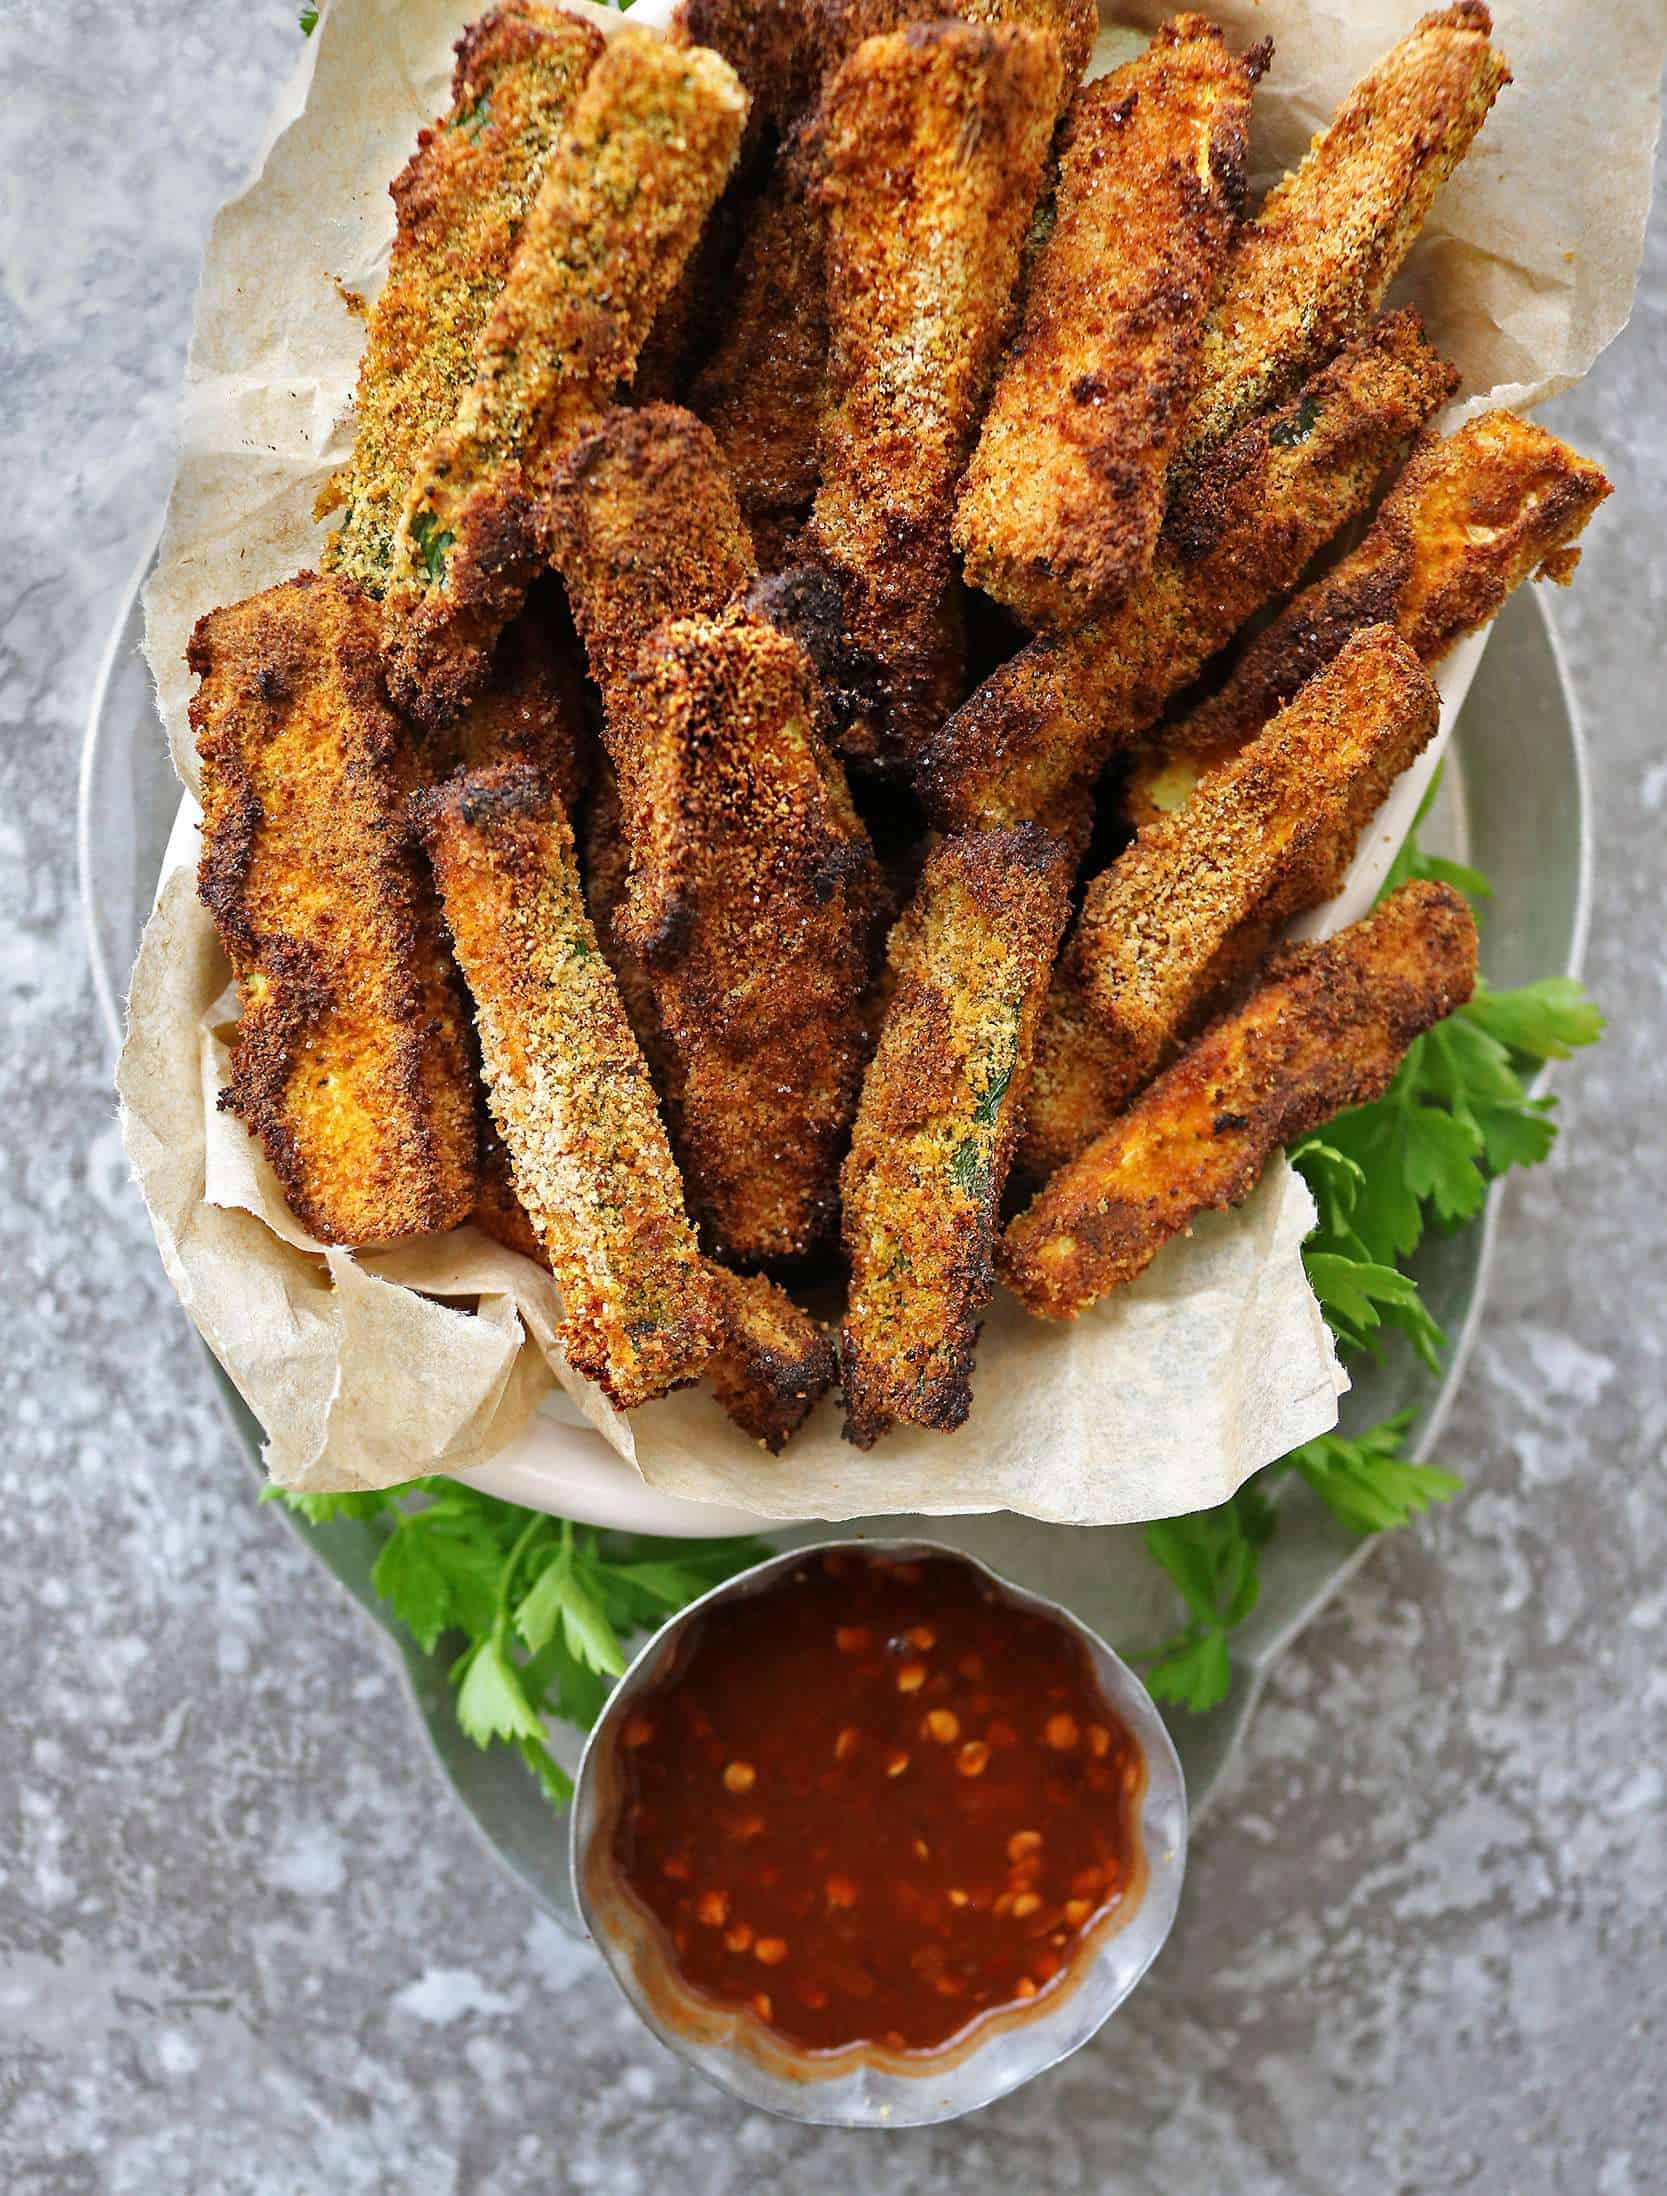 Gluten Free Air Fryer Zucchini Fries on a tray.